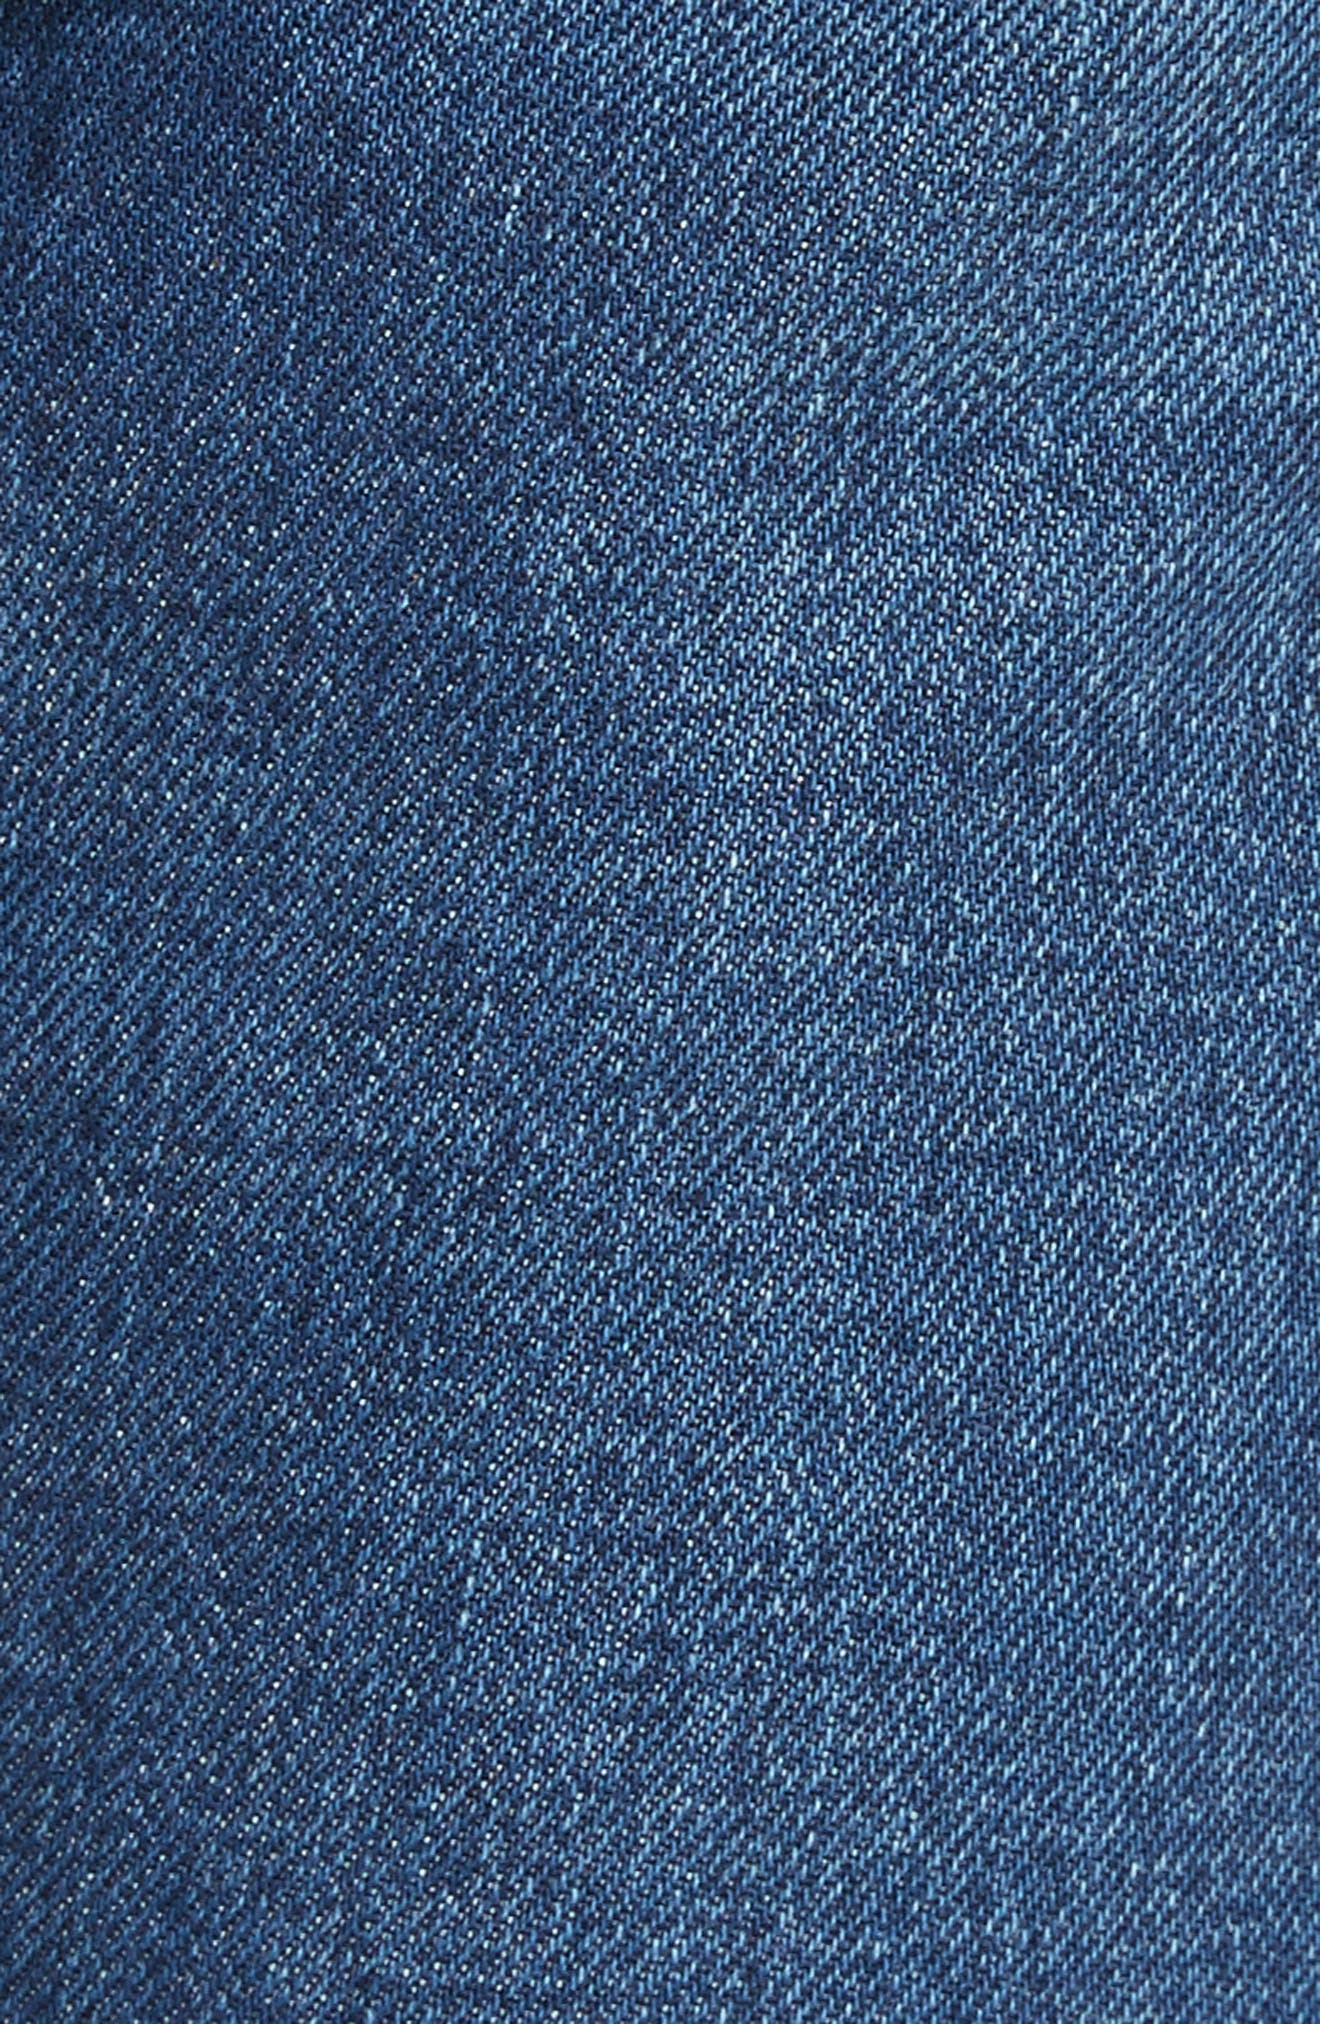 Embroidered Jeans,                             Alternate thumbnail 5, color,                             Deep Dark Blue